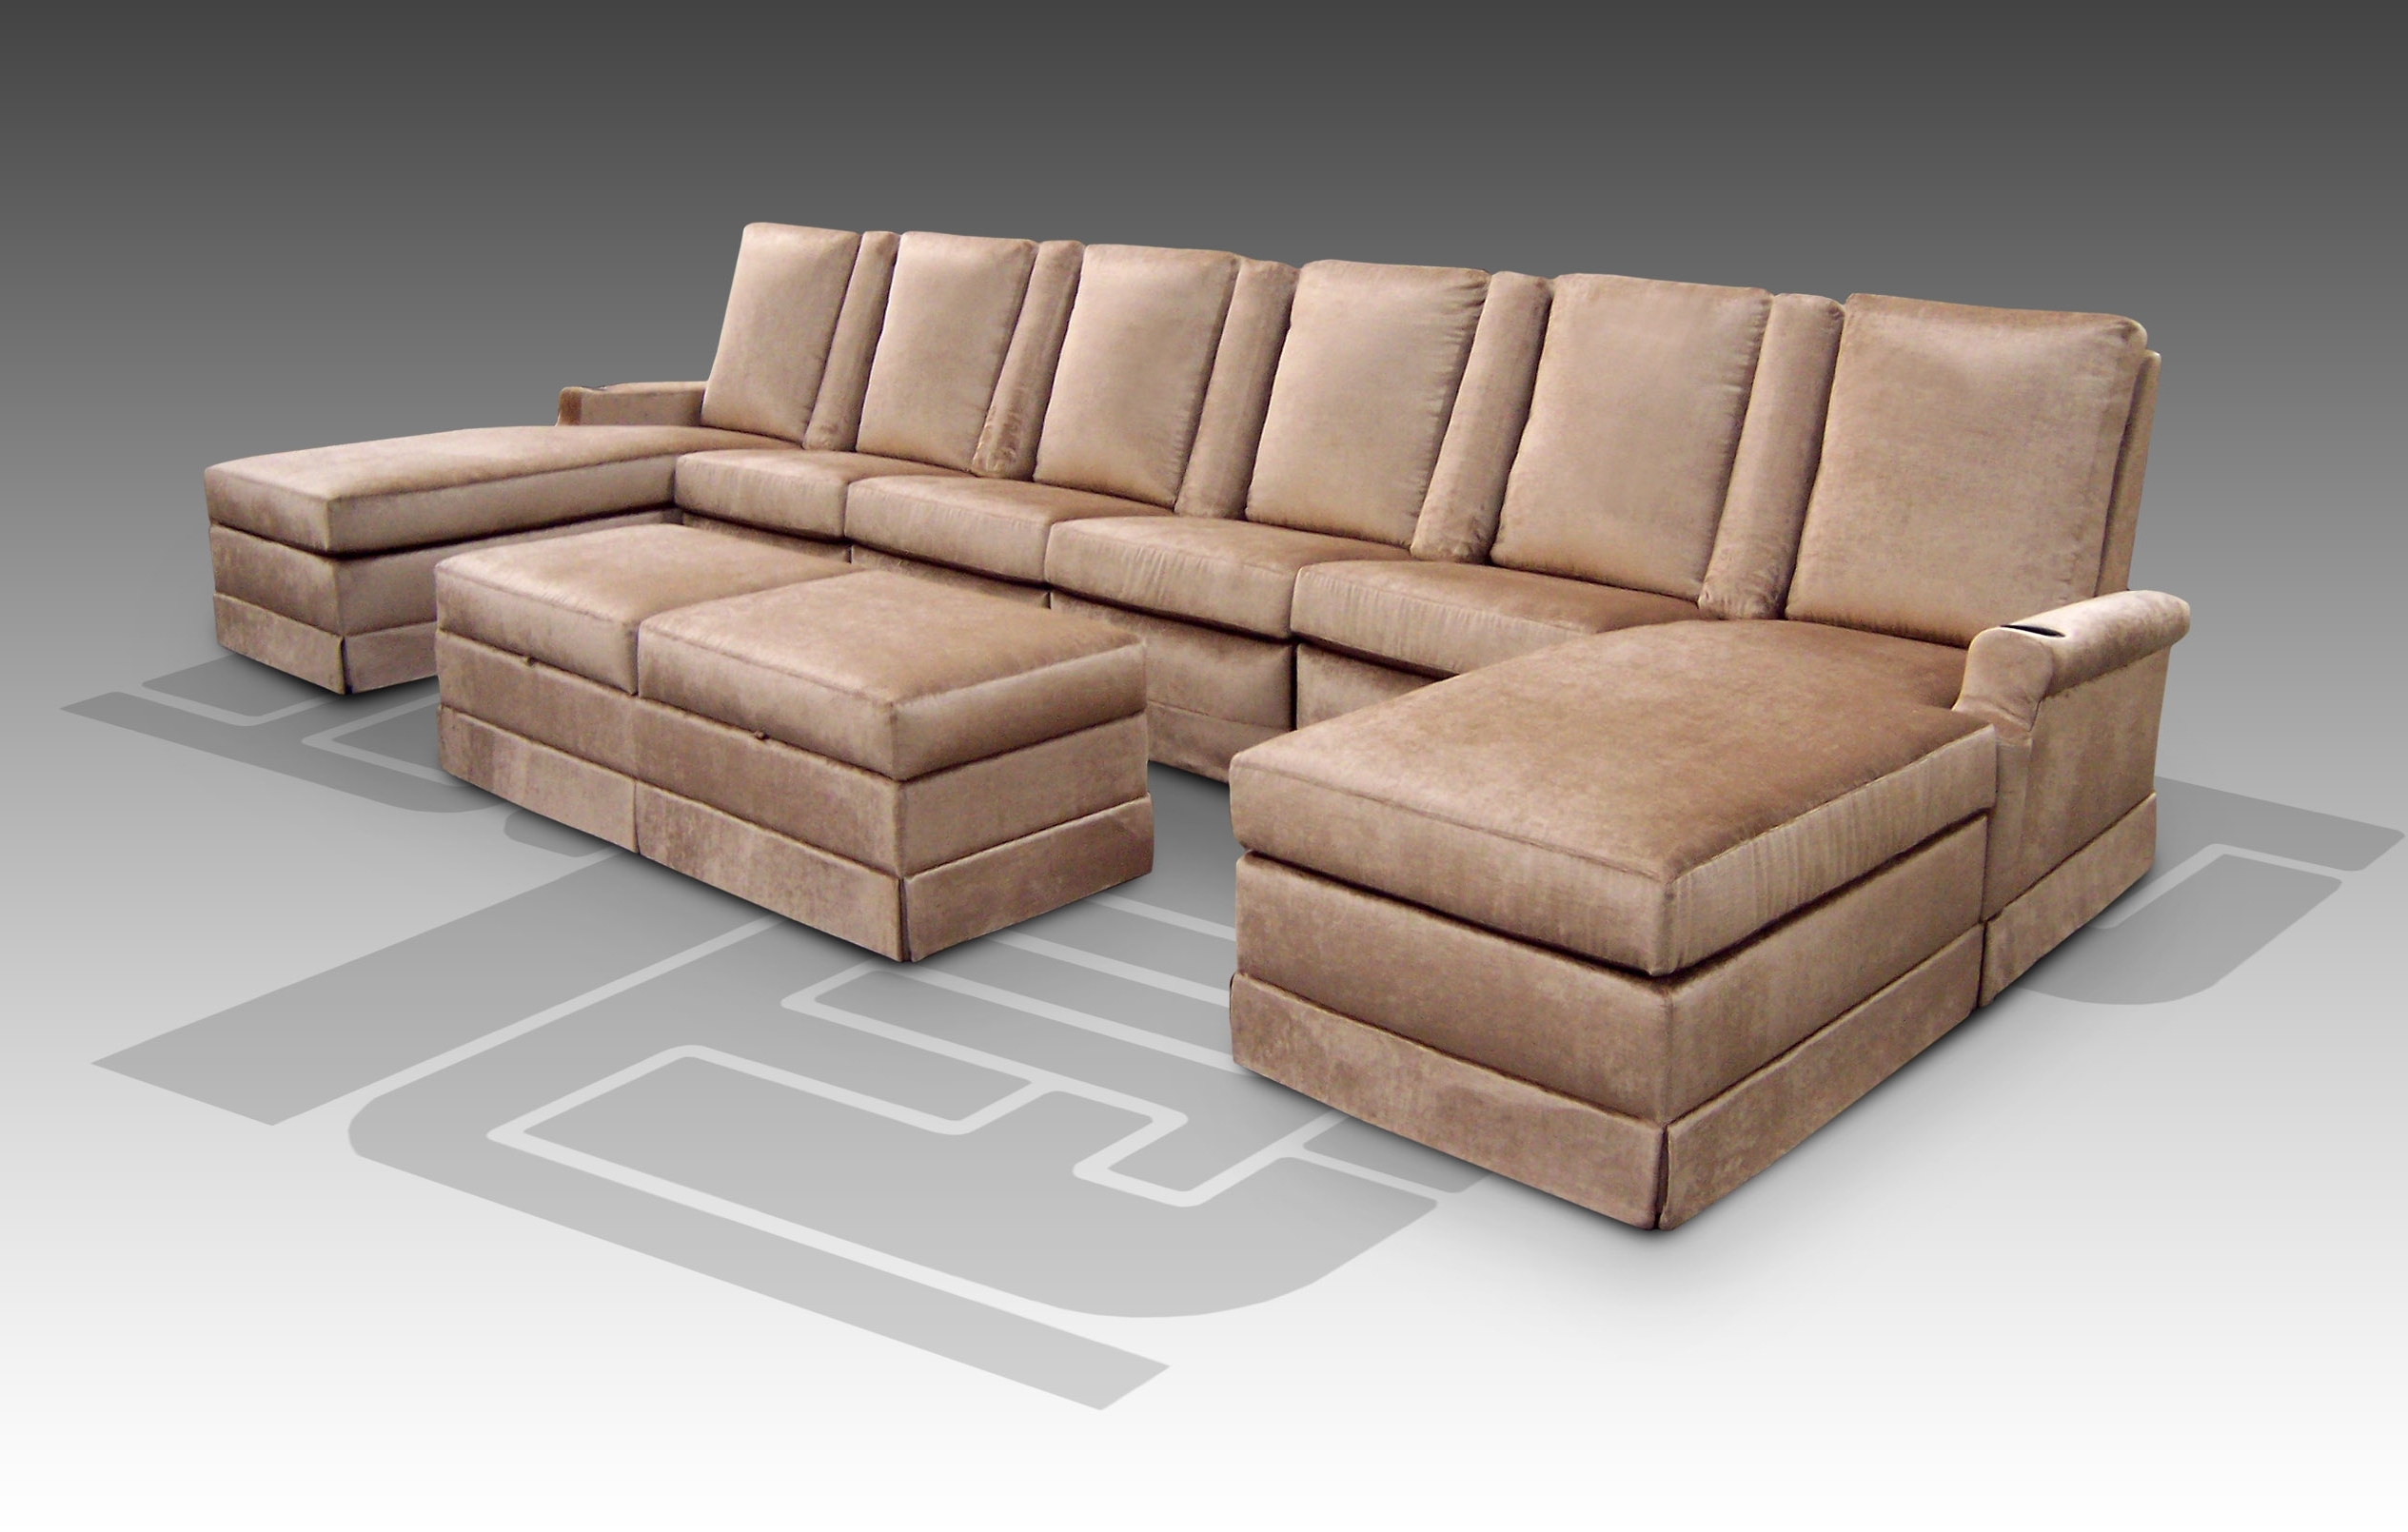 Well Known Sectional Sofa: Theater Seating Sectional Sofa Home Theater Within Theatre Sectional Sofas (View 16 of 20)